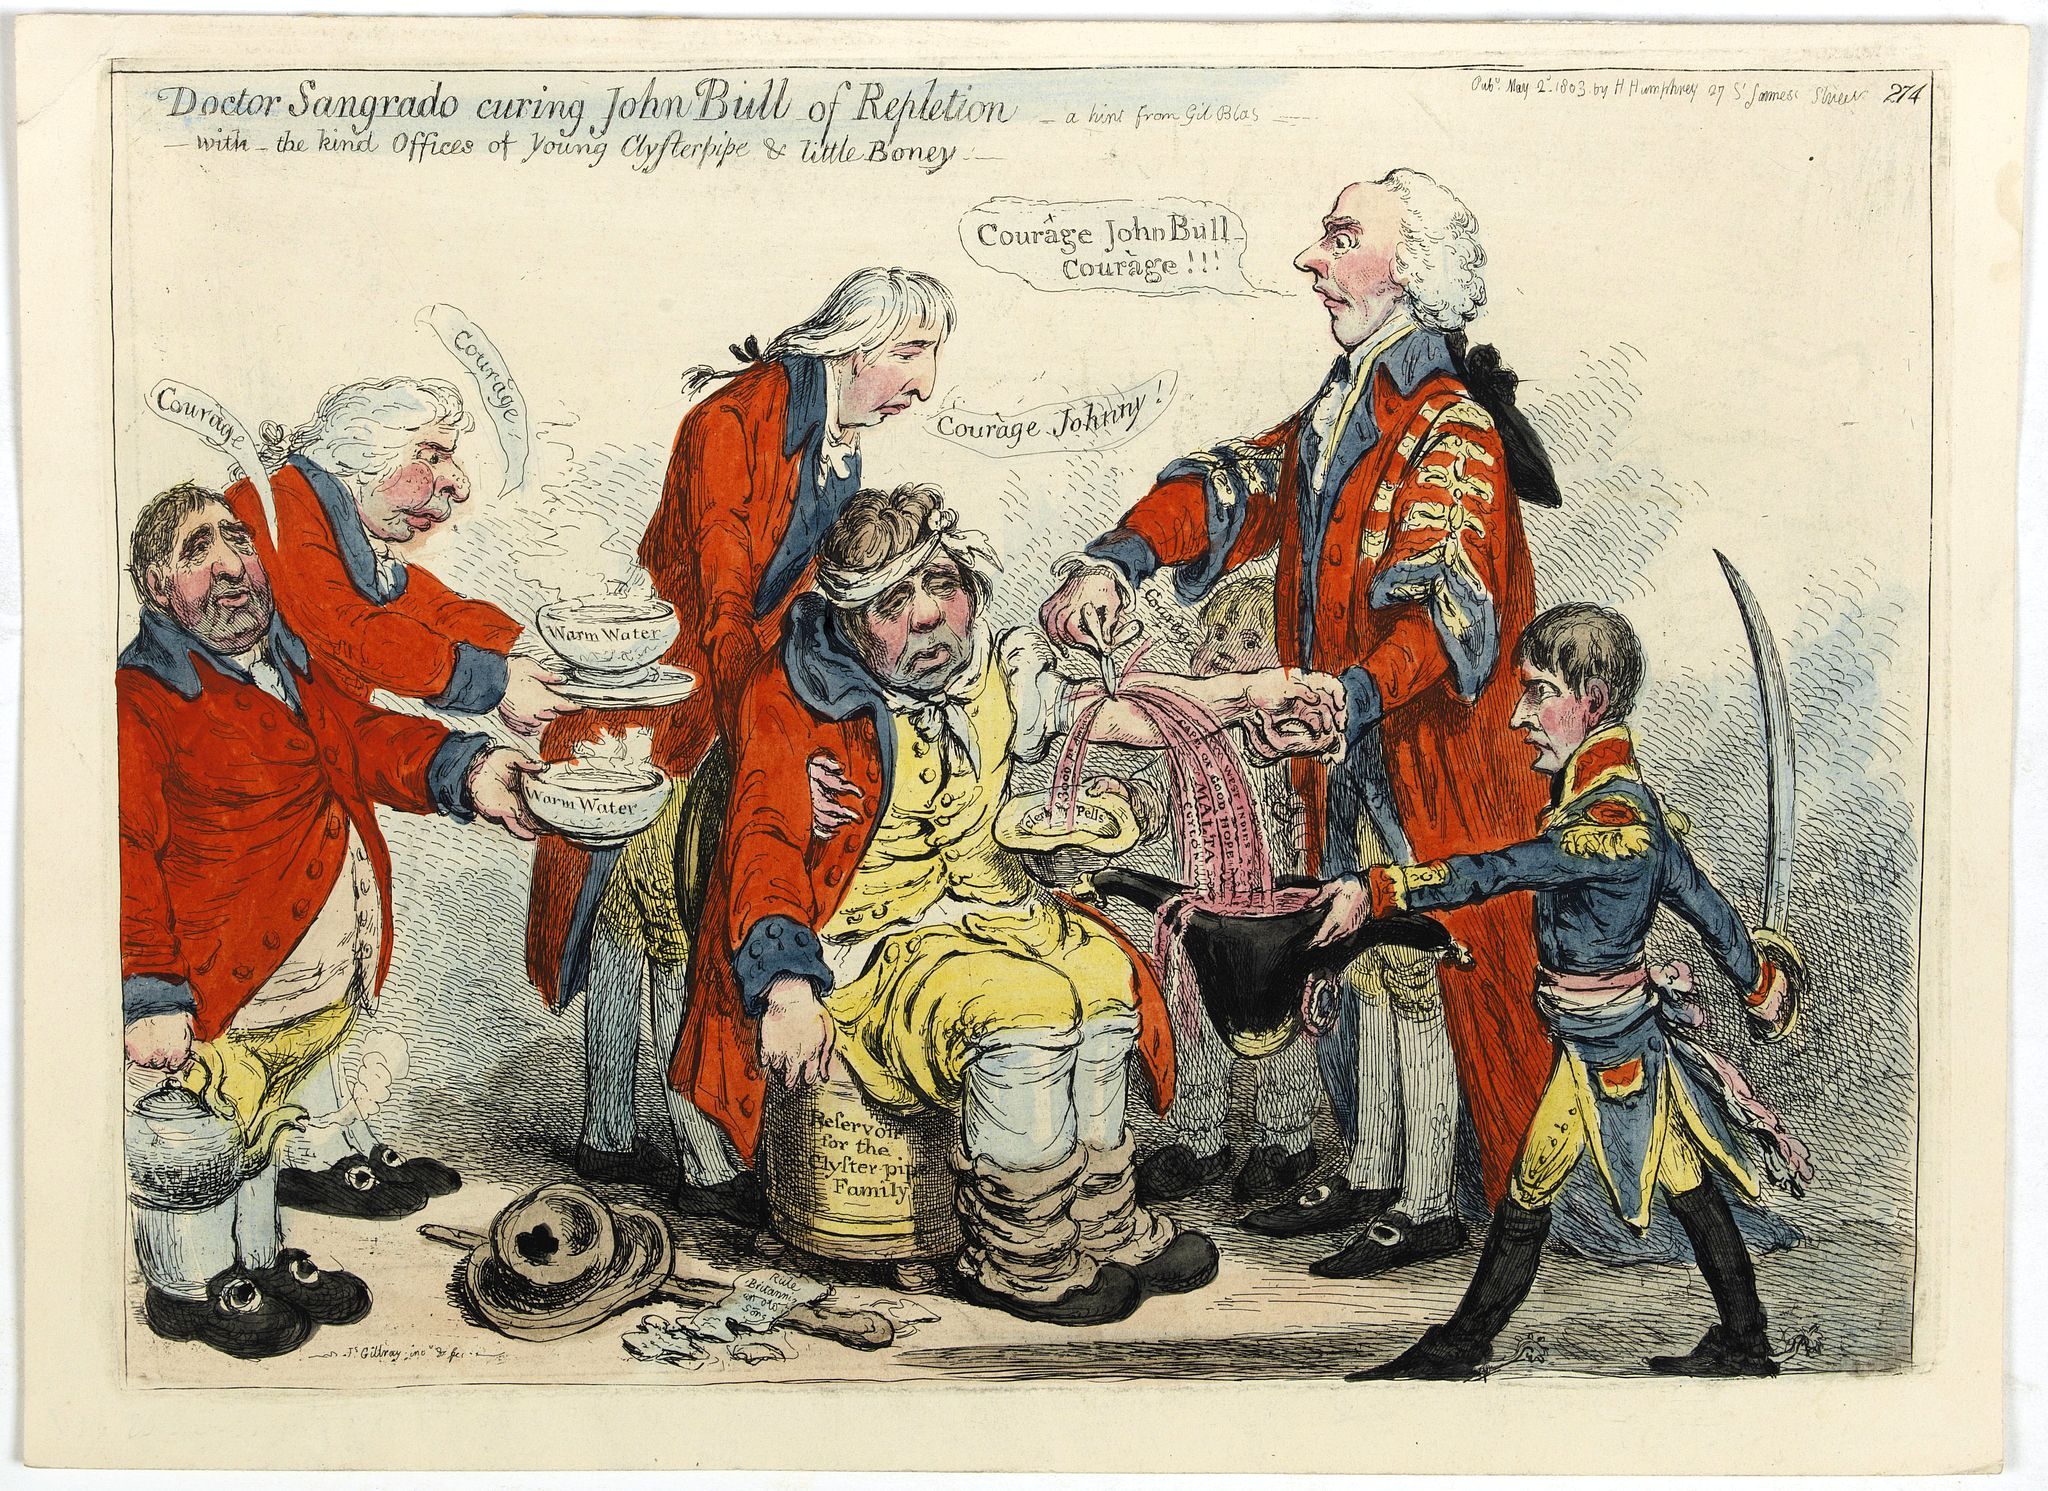 GILLRAY, James. -  Doctor Sangrado curing John Bull of repletion-with the kind offices of young Clysterpipe & little Boney- a hint from Gil Blas. (pl 274) / verso: A Phantasmagoria - scene  conjuring up an armed skeleton.